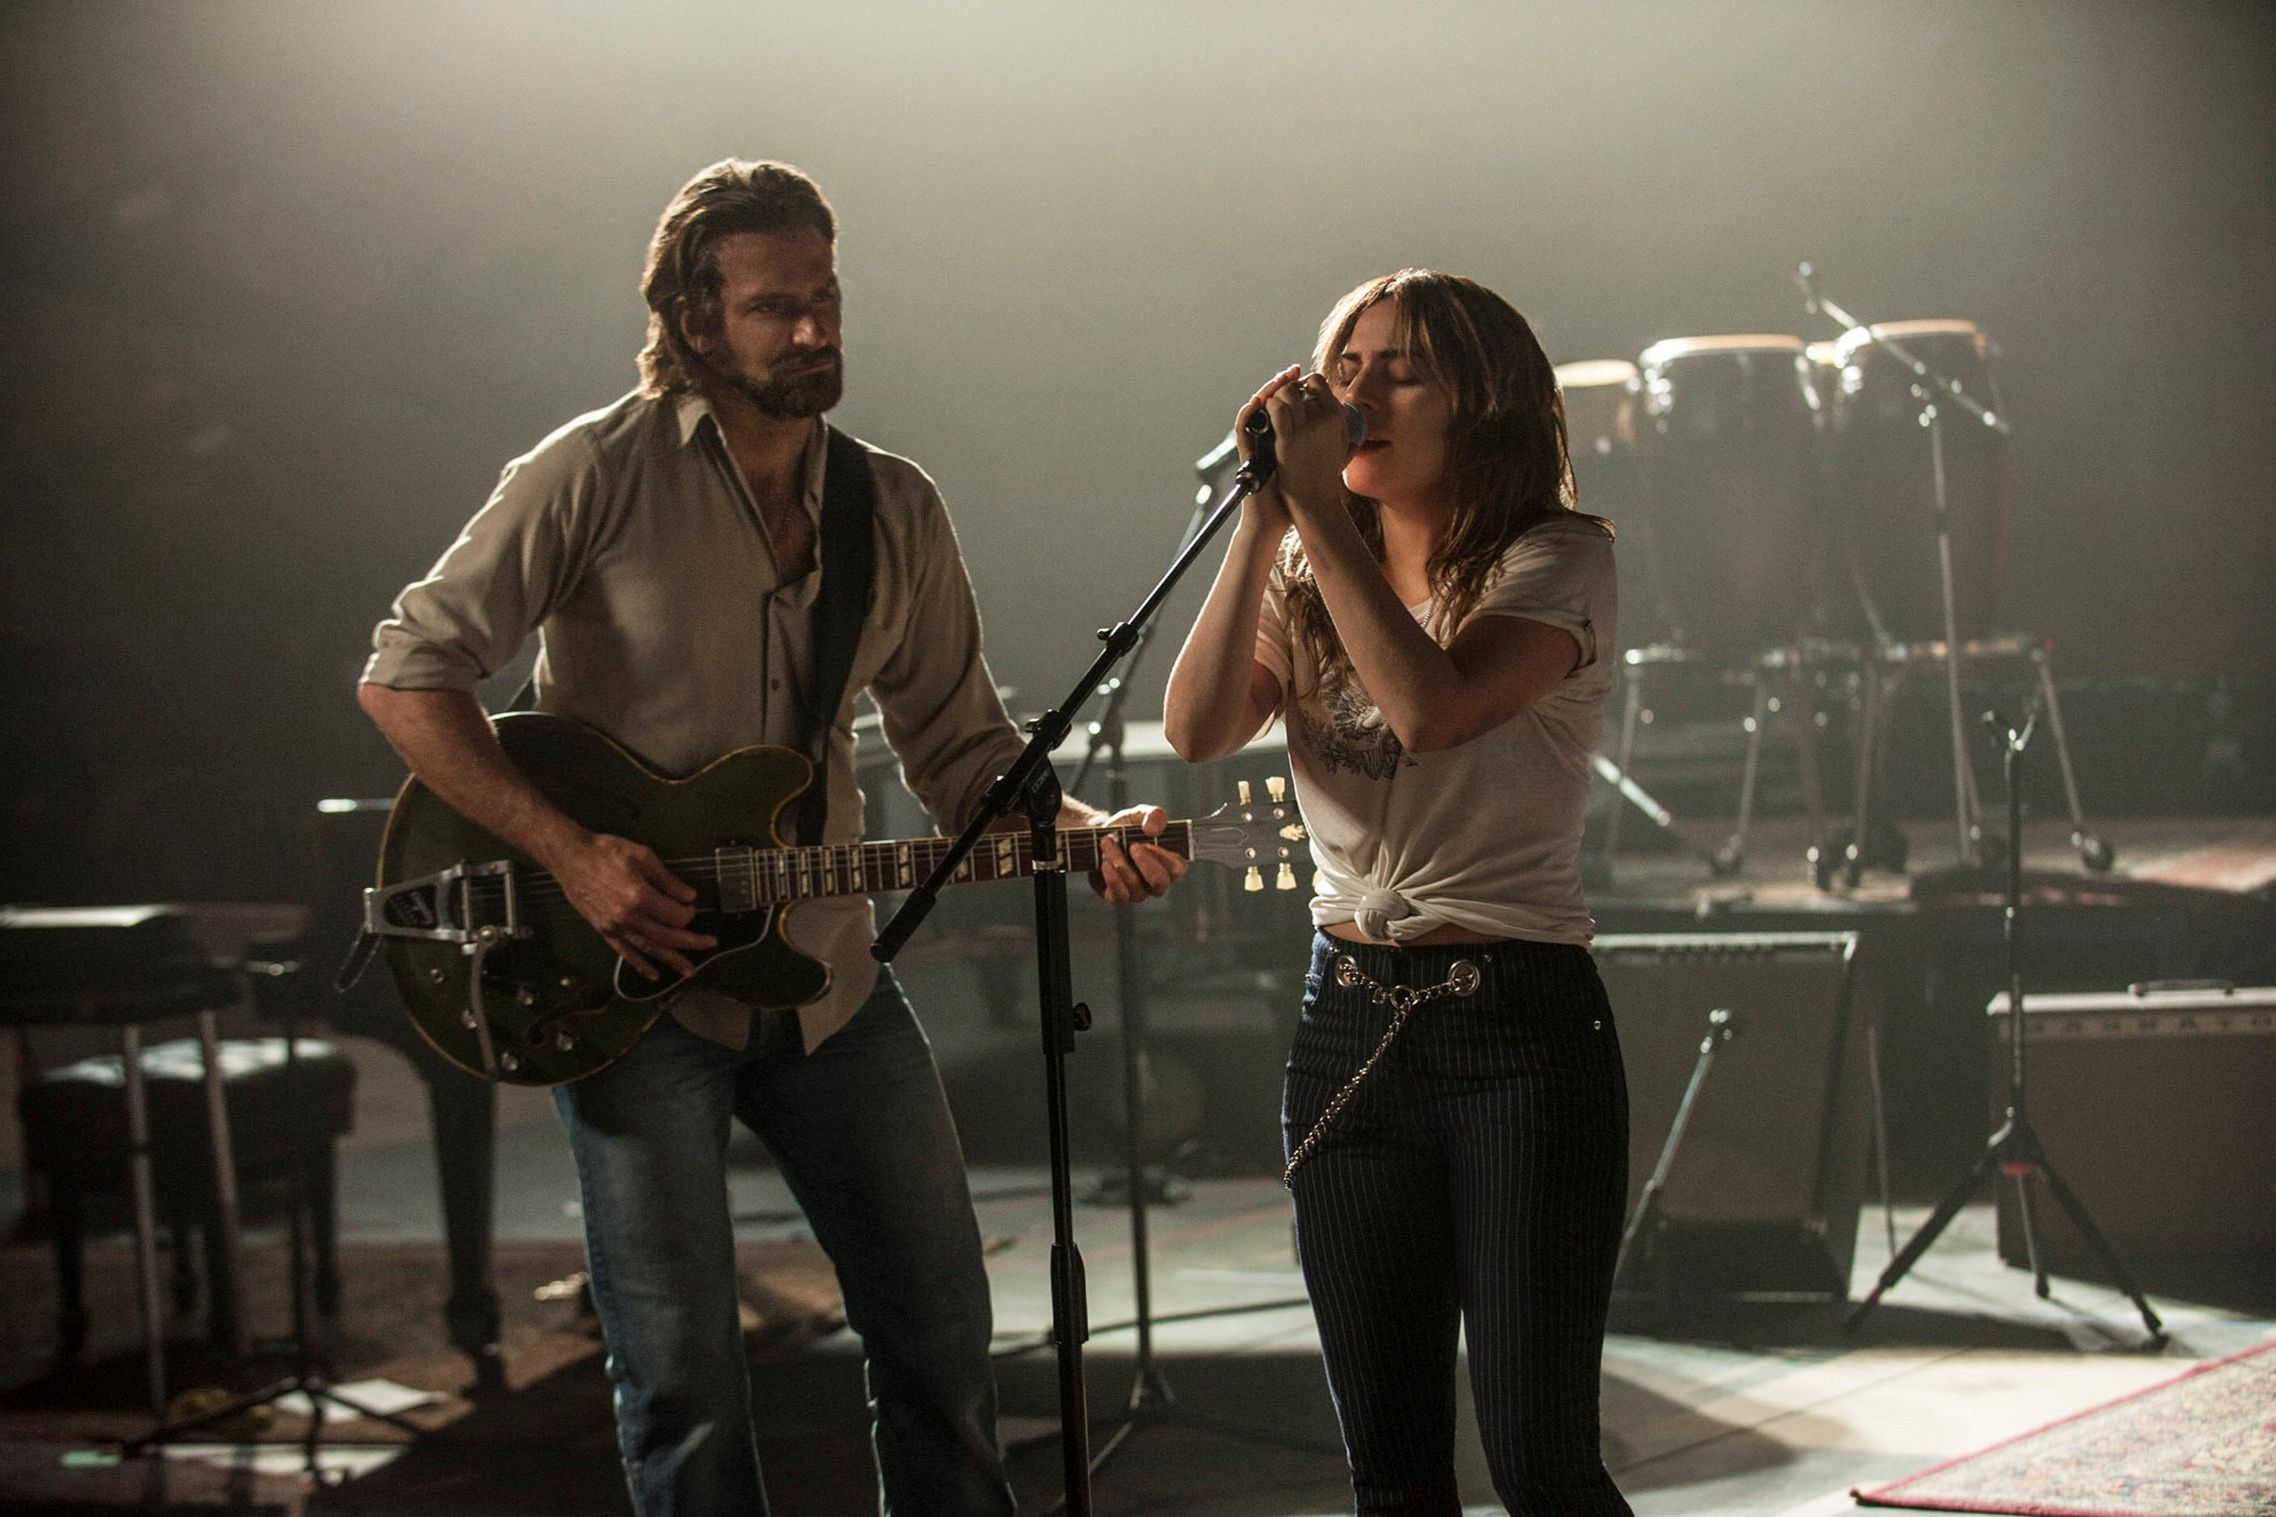 Lady Gaga in A Star Is Born production image